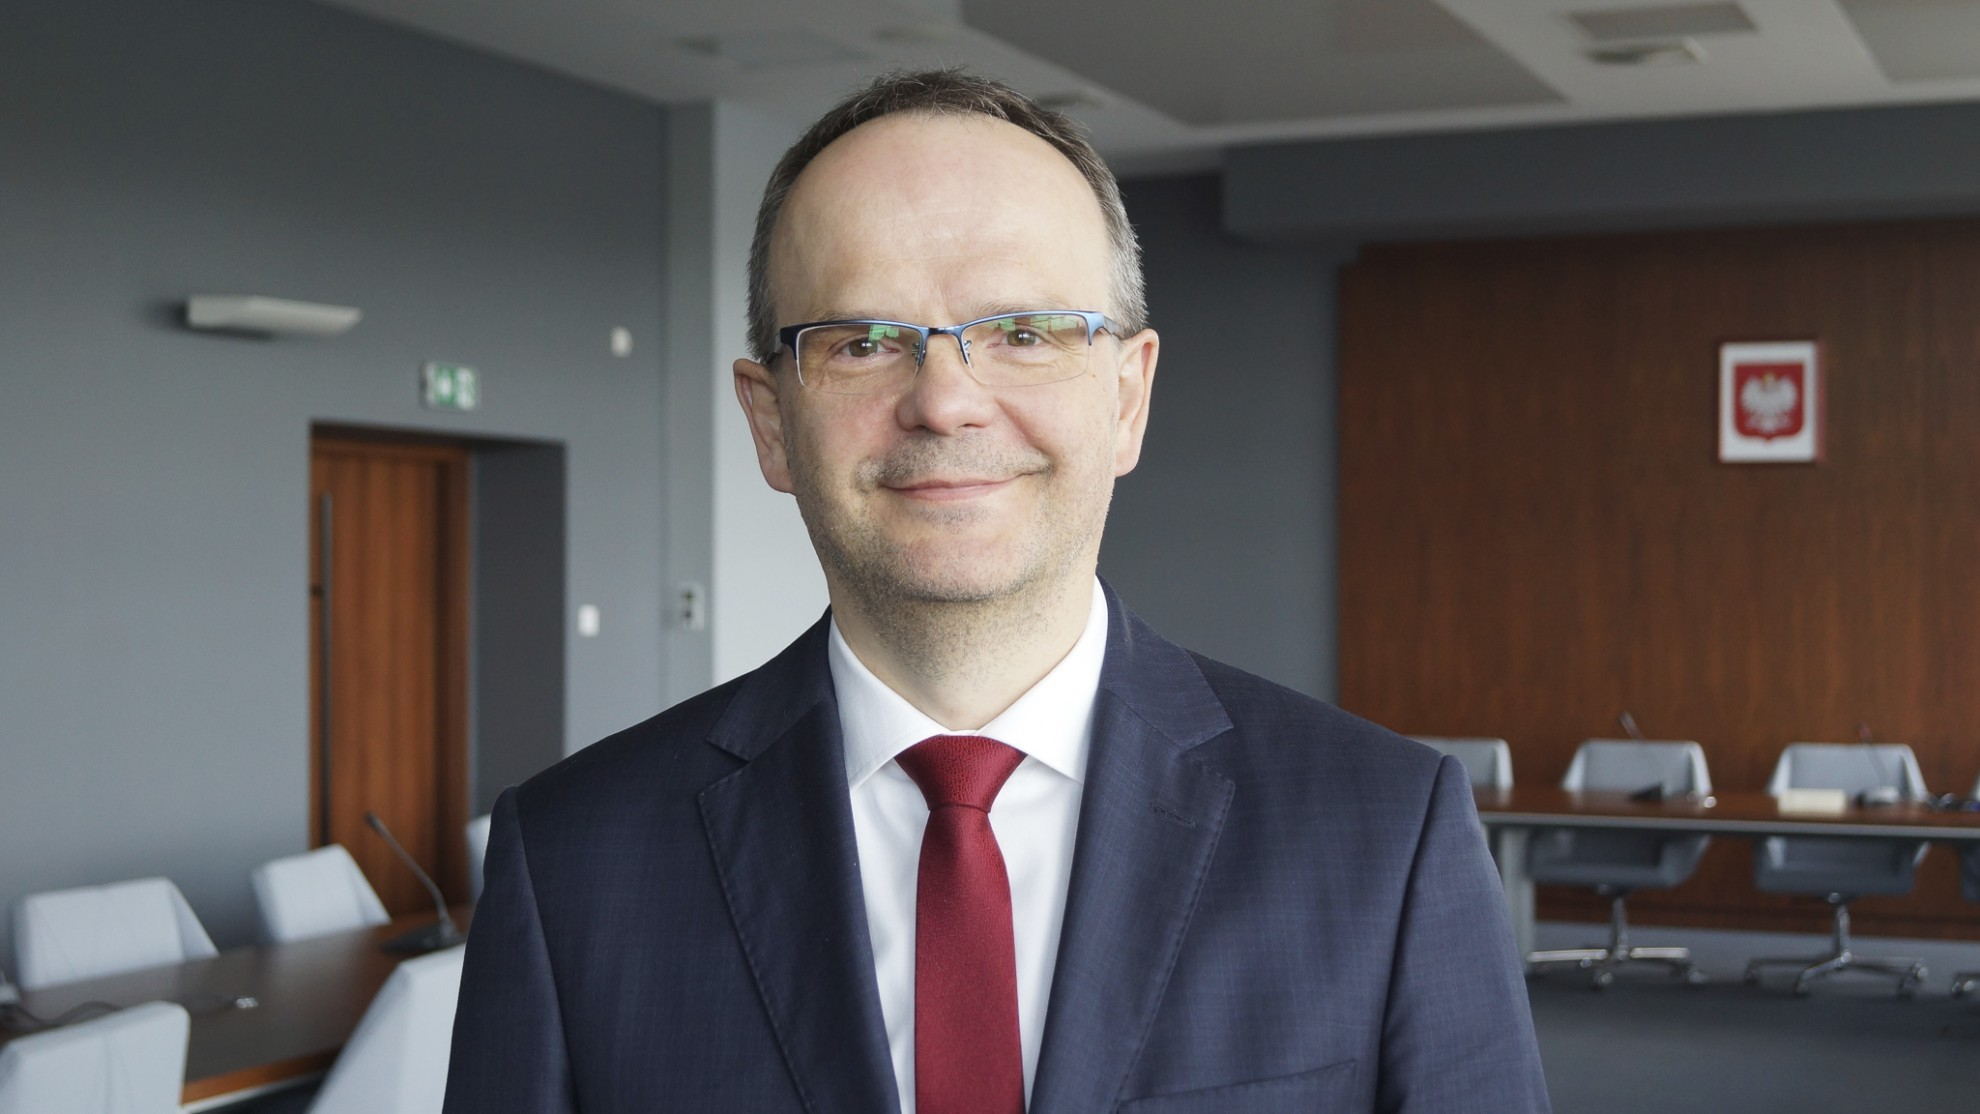 Robert Ciborowski was elected as rector of the University of Bialystok for the next term - 2020-2024